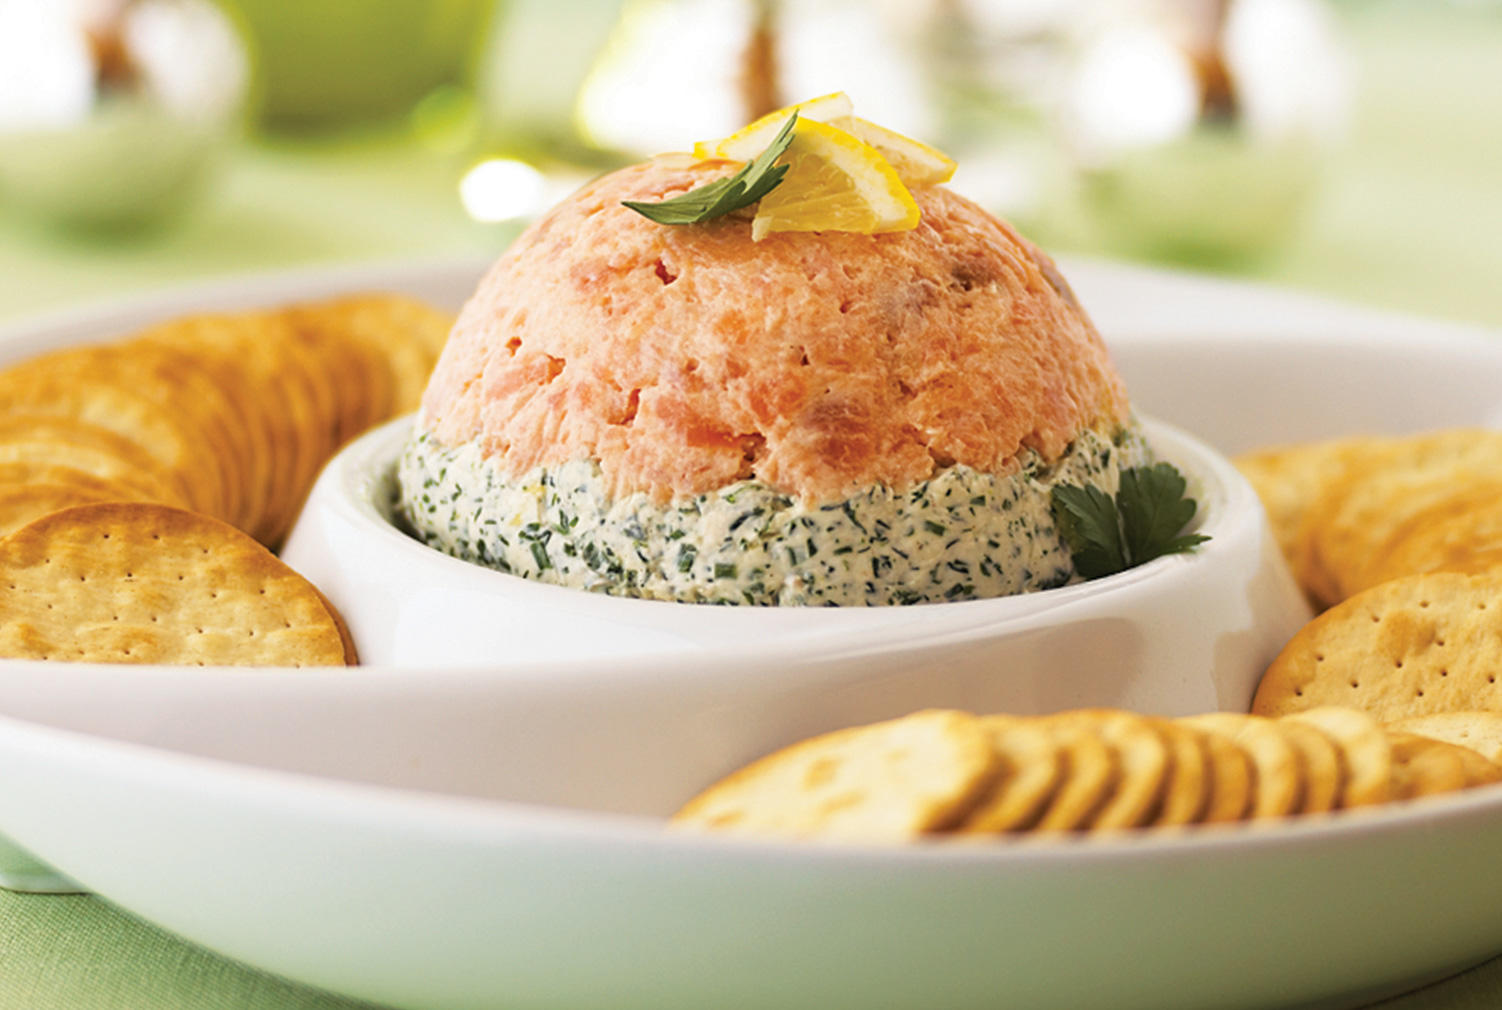 Layered Smoked Salmon Spread